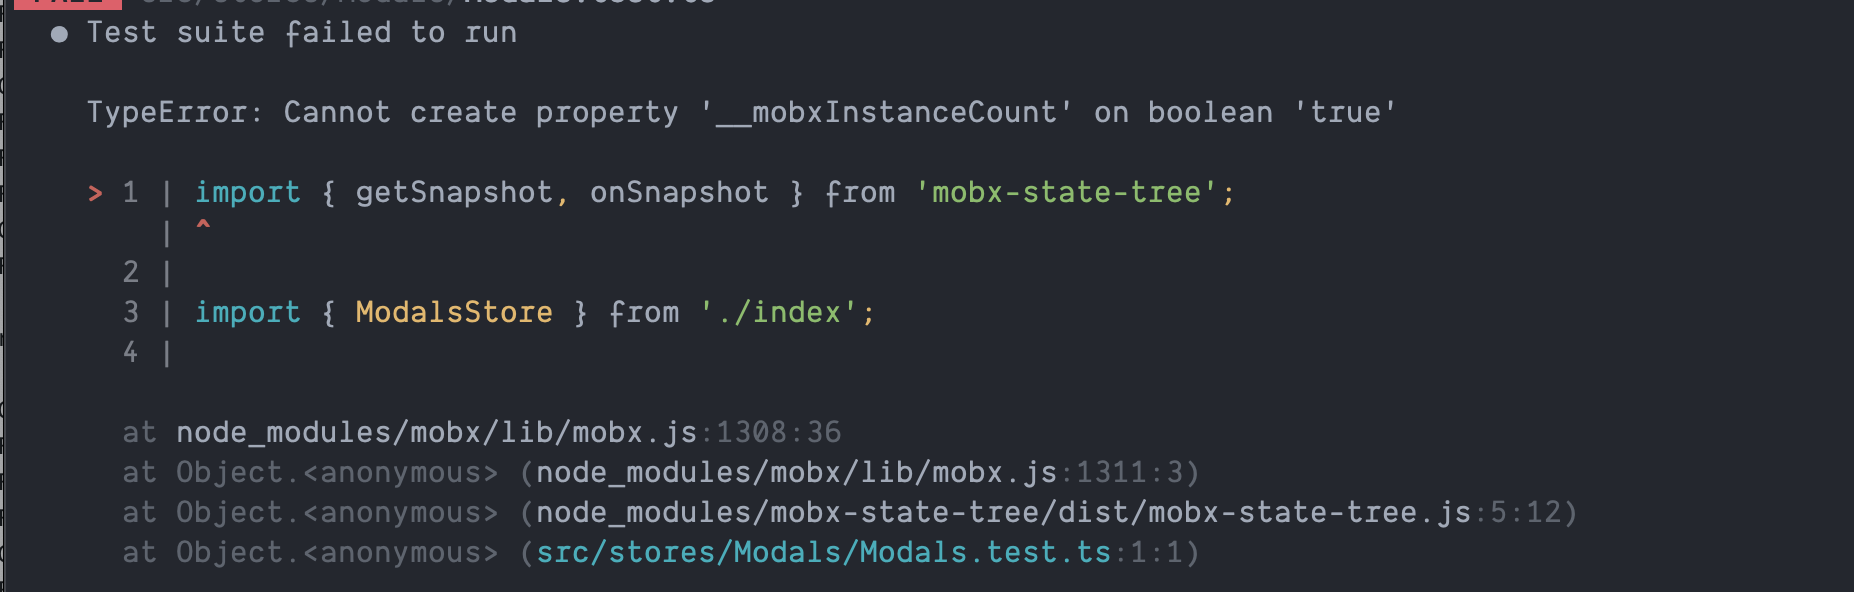 There are multiple mobx instances active' error caused by